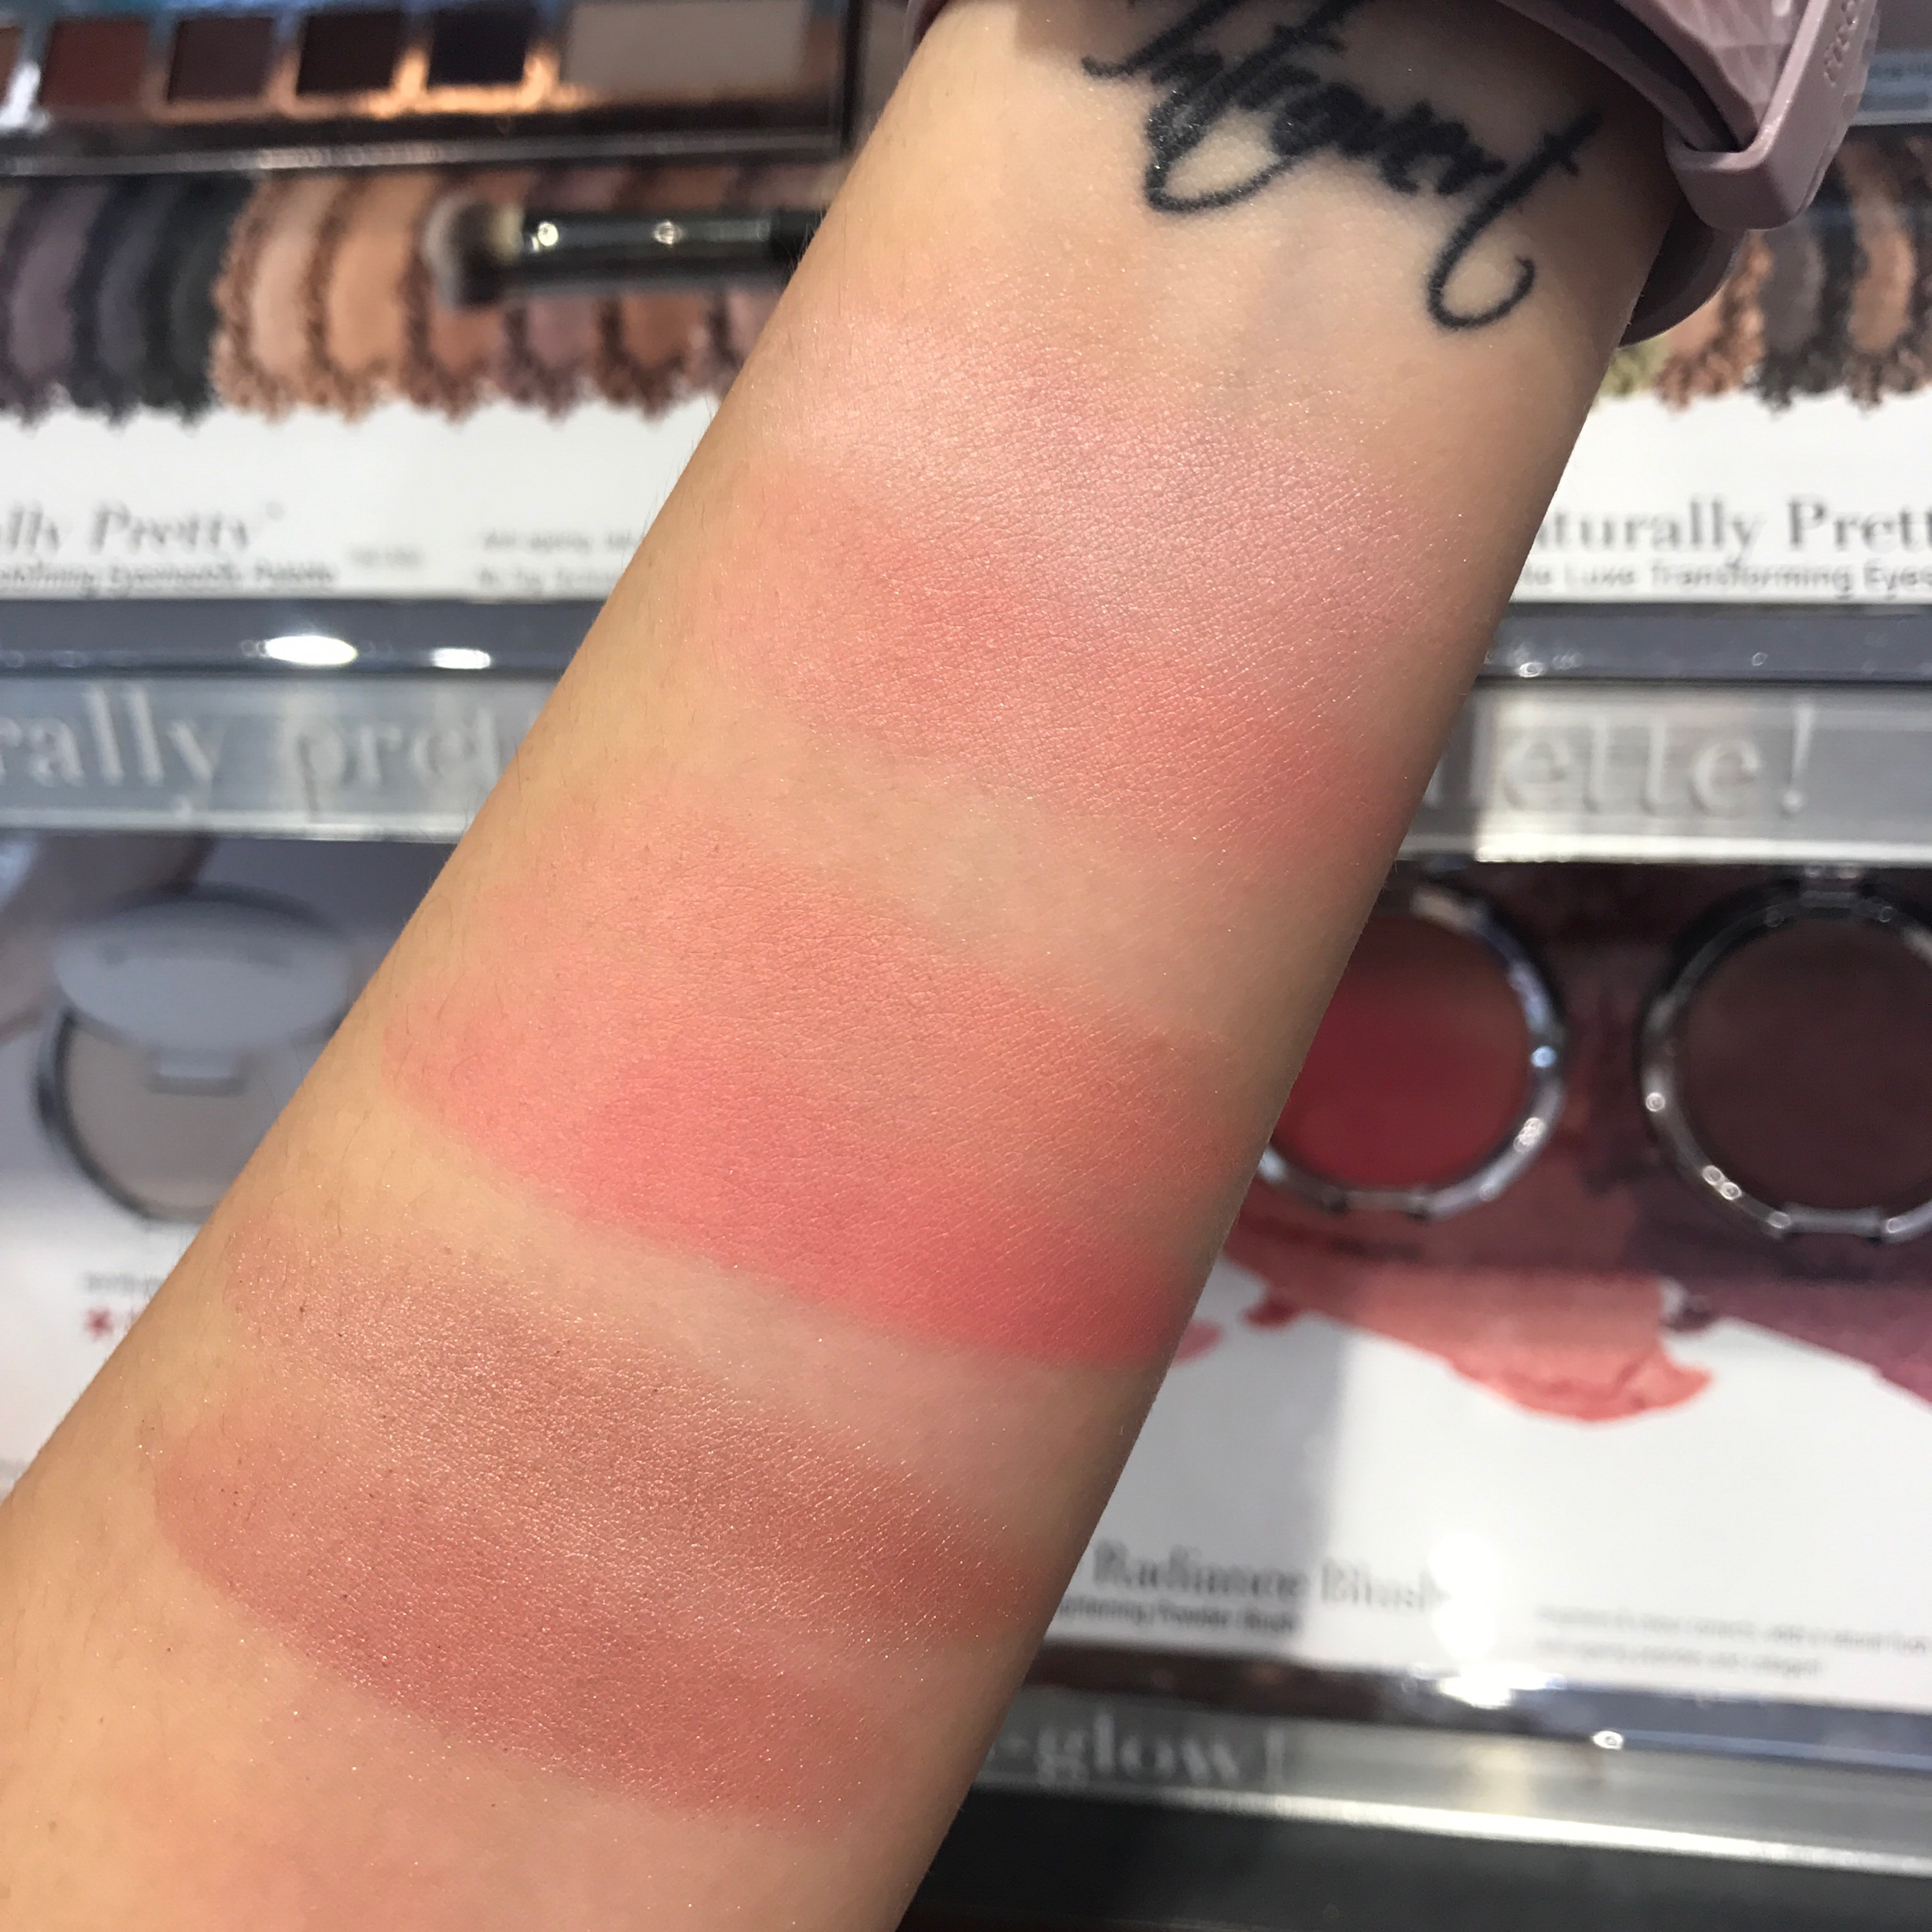 It cosmetics Ombré Radiance Blush swatches